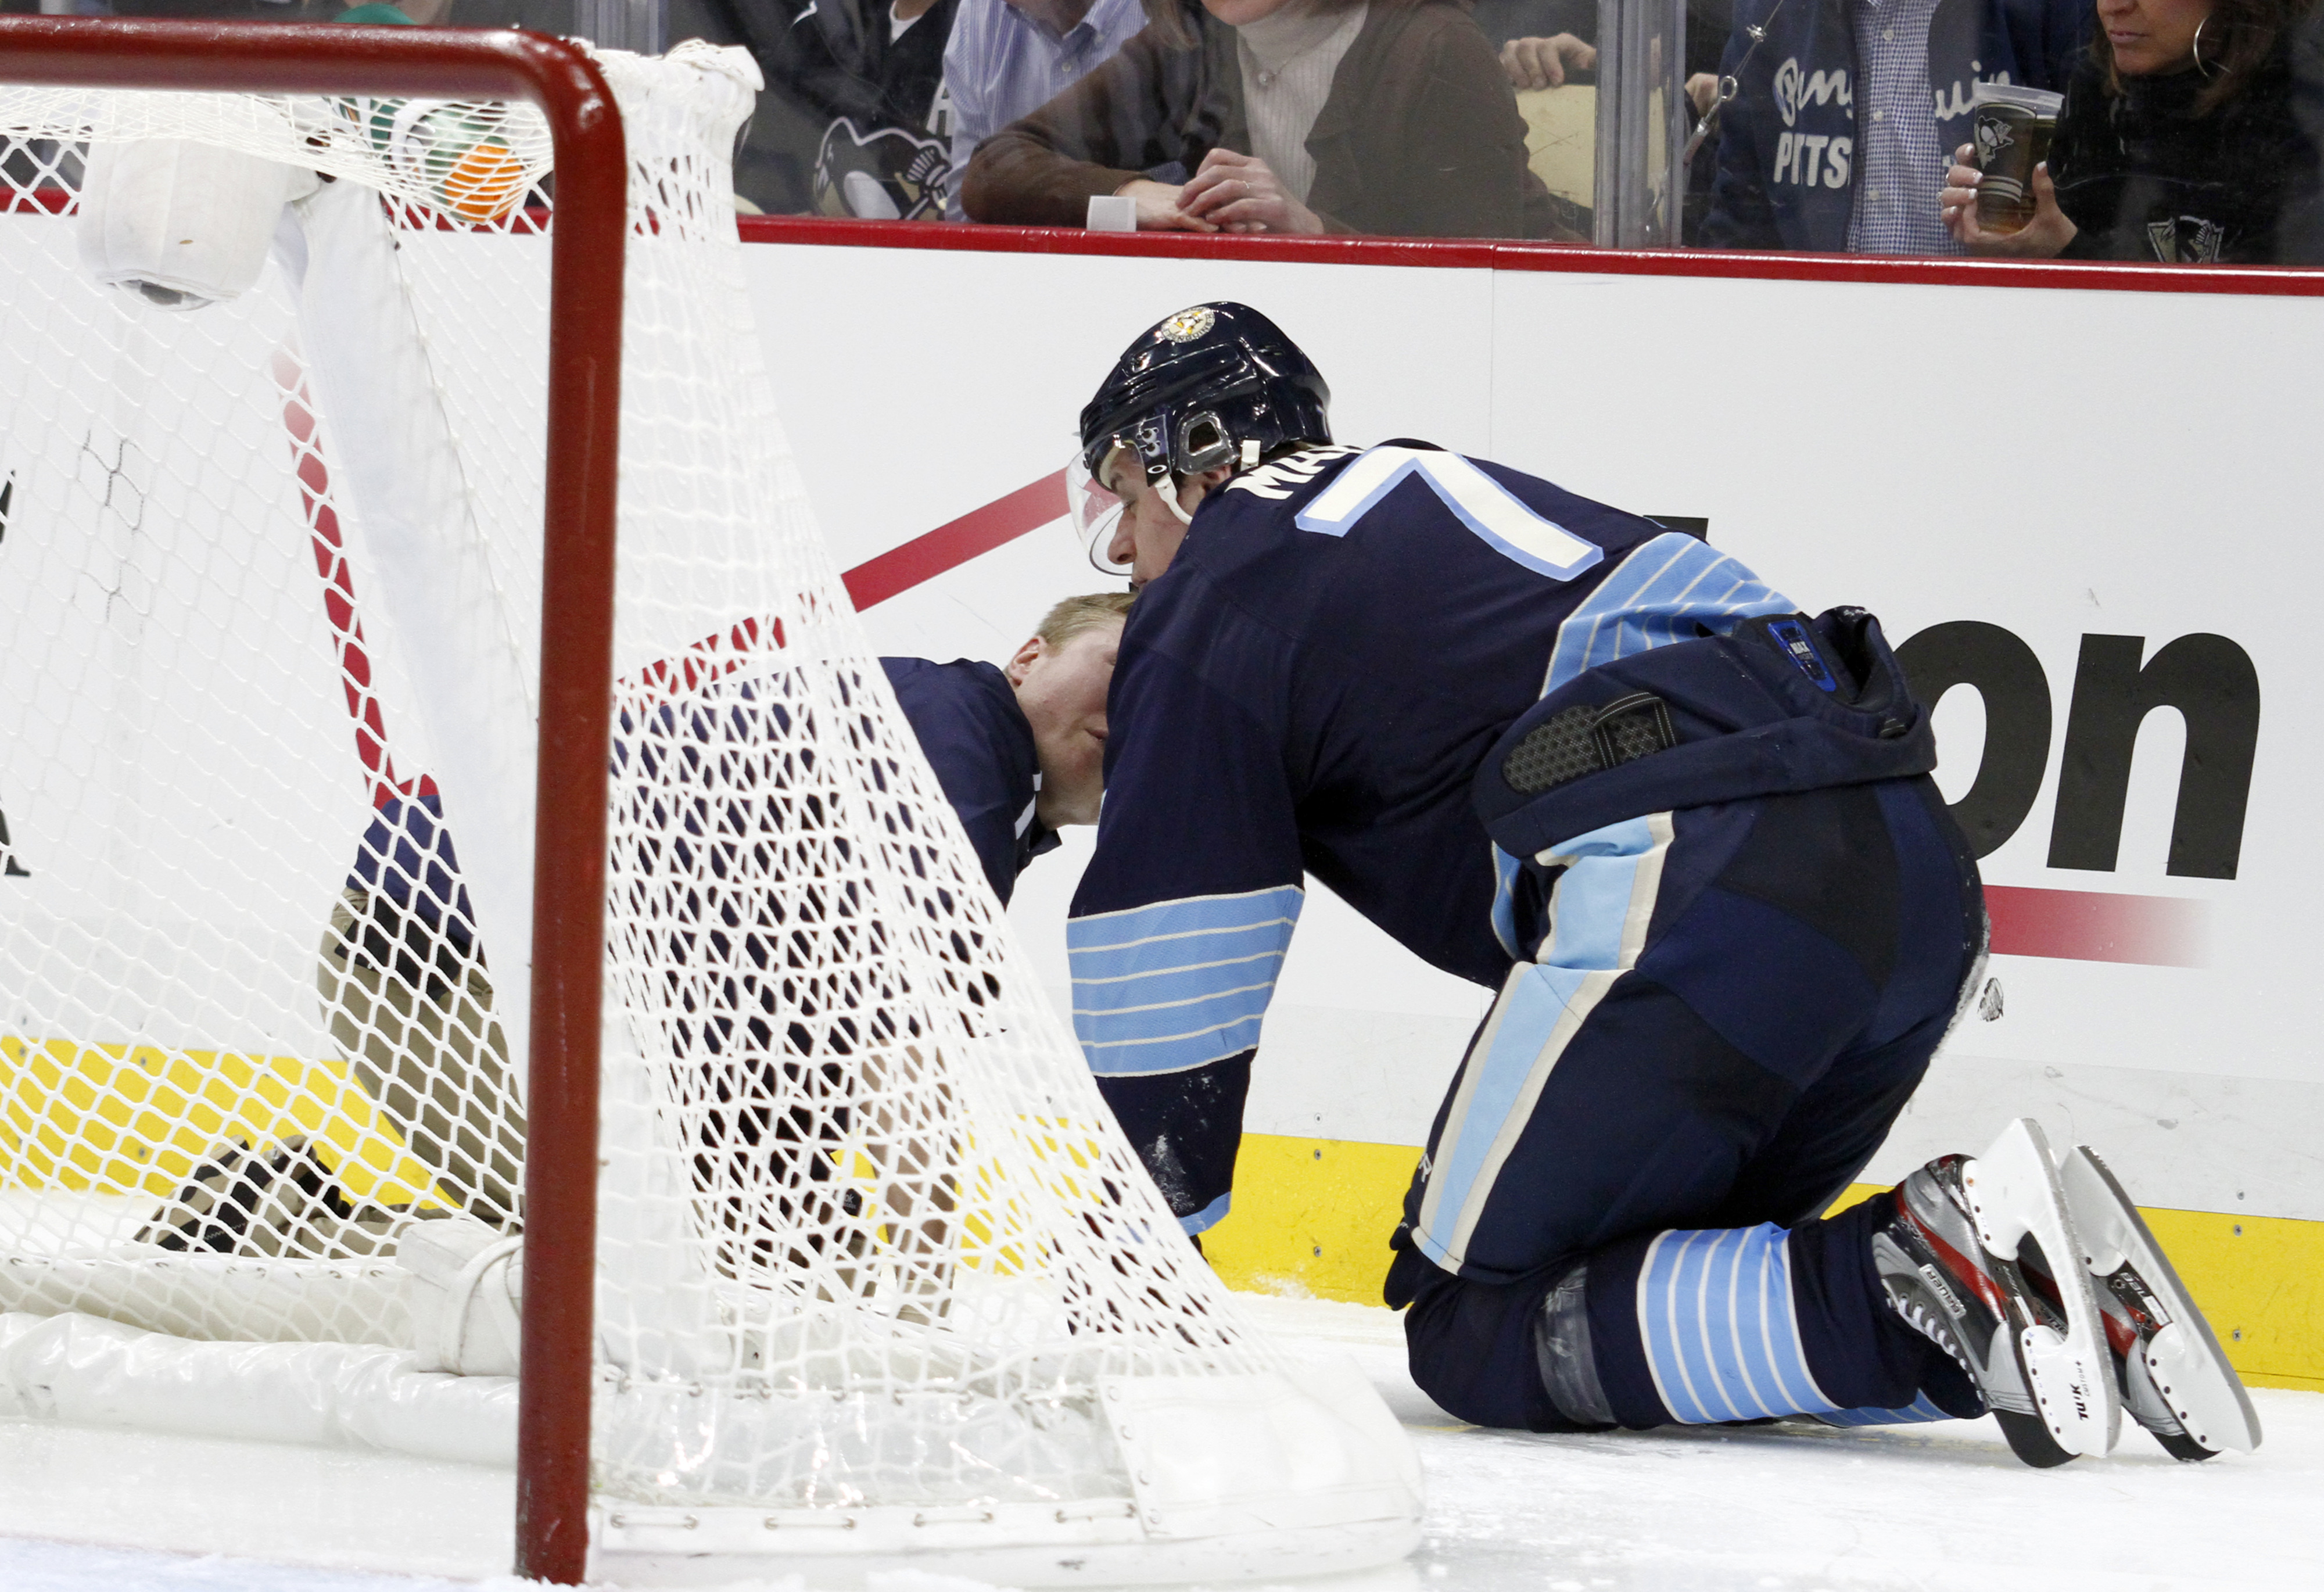 From Friday, a scary sight as we imagine Evgeni Malkin here is trying to remember what day it is and what city he's in.